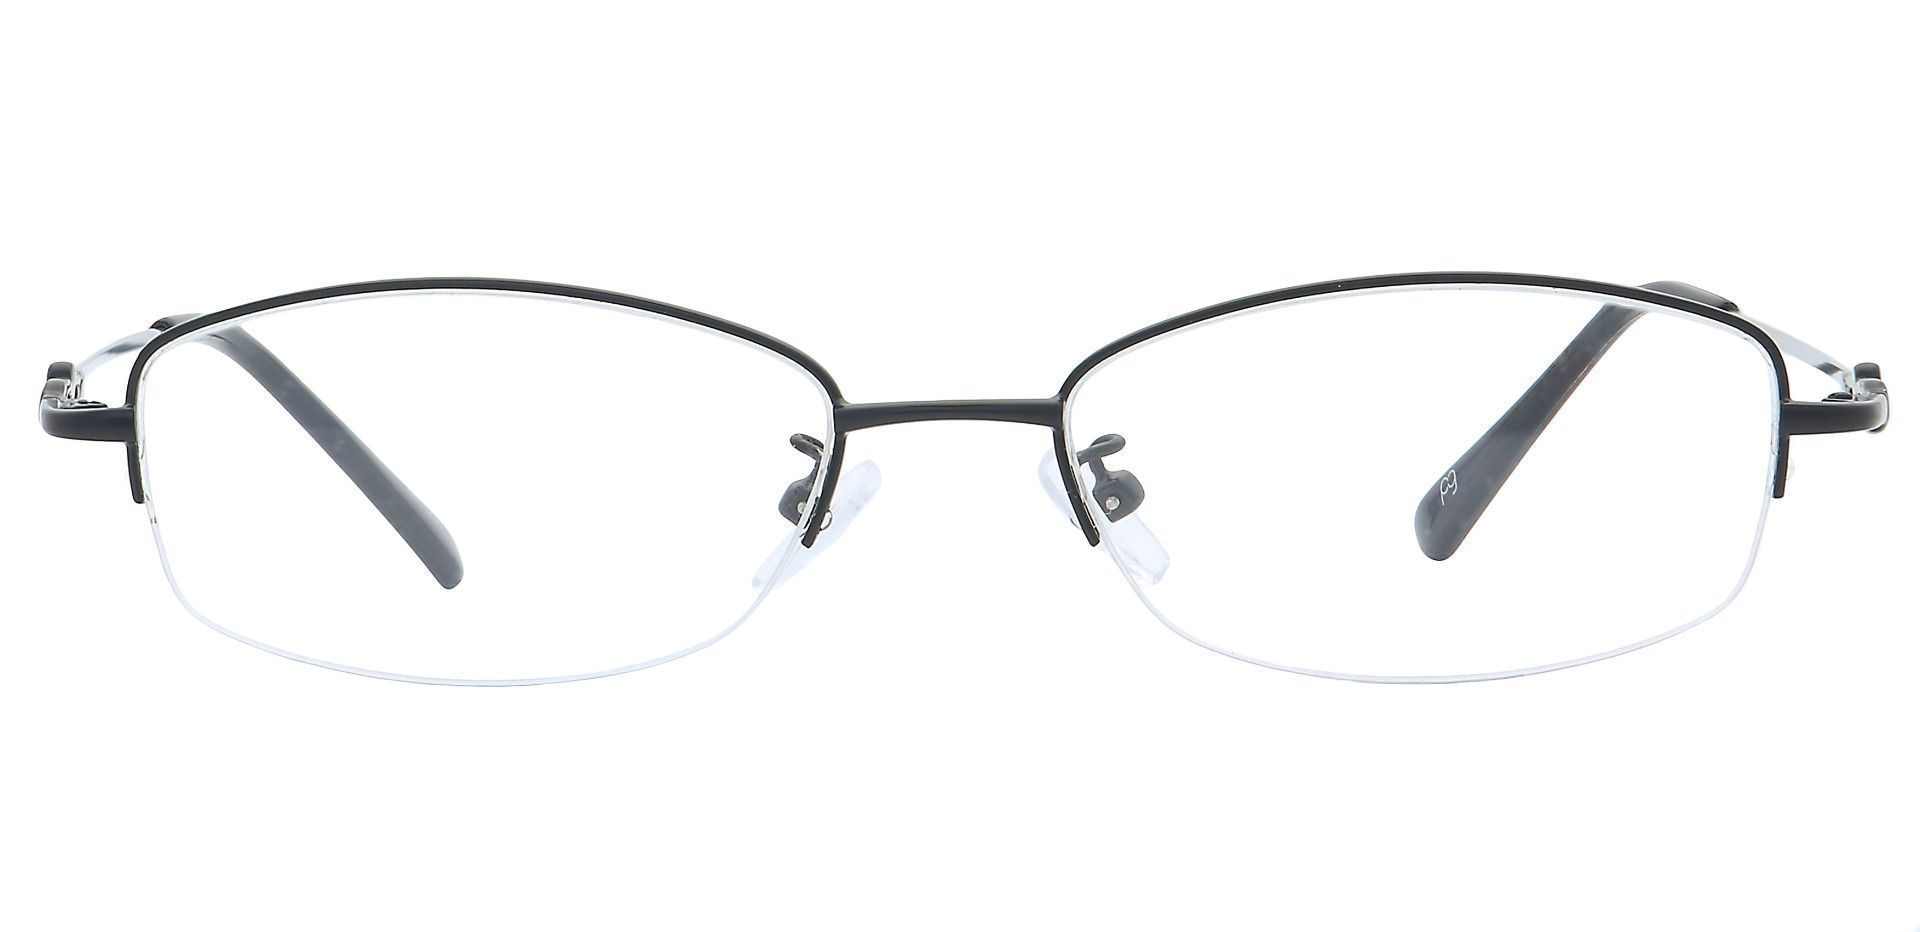 Meadowsweet Oval Prescription Glasses - Black